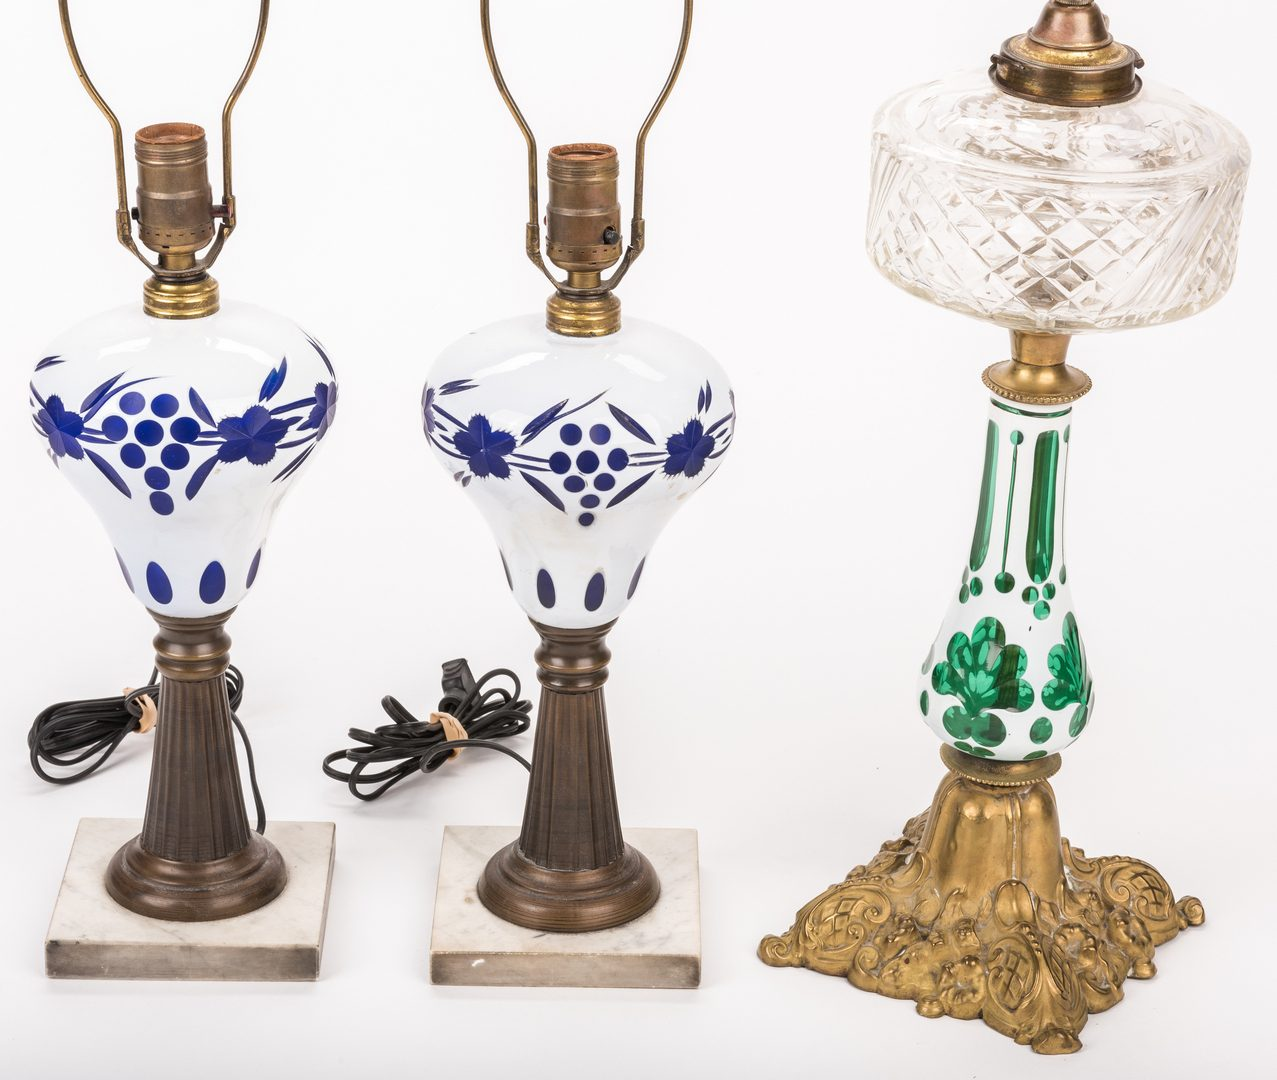 Lot 327: 3 Early 20th Cent. Cased Glass Lamps